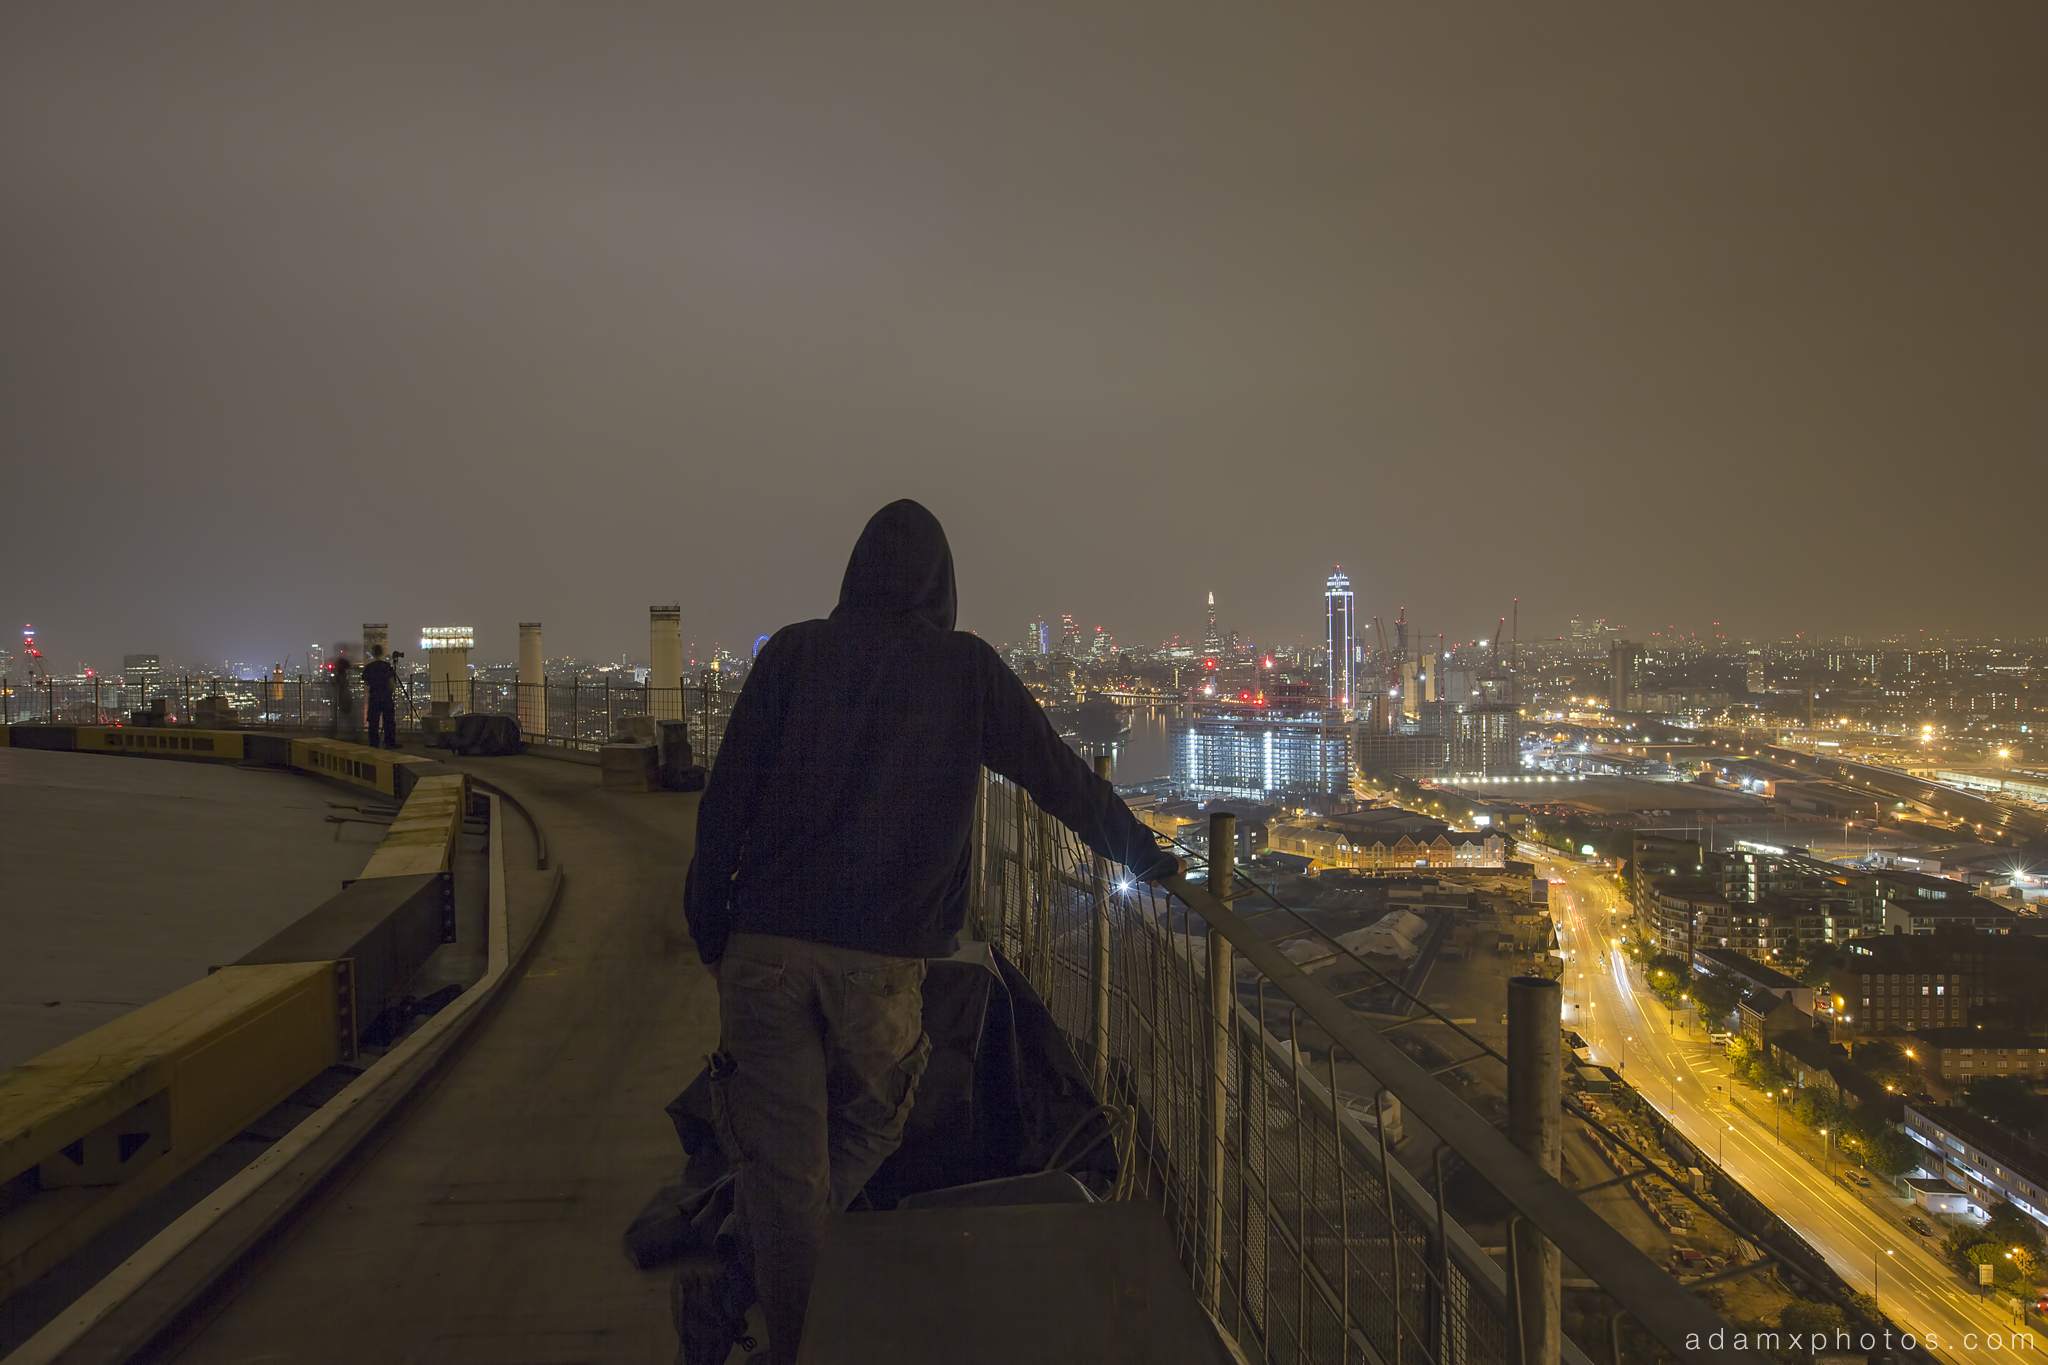 Adam X Urbex UE Urban Exploration London Rooftops High Night Photo Photography Skyline Battersea Gas Holders Gasometer roof explorers battersea power station BPS selfie self portrait